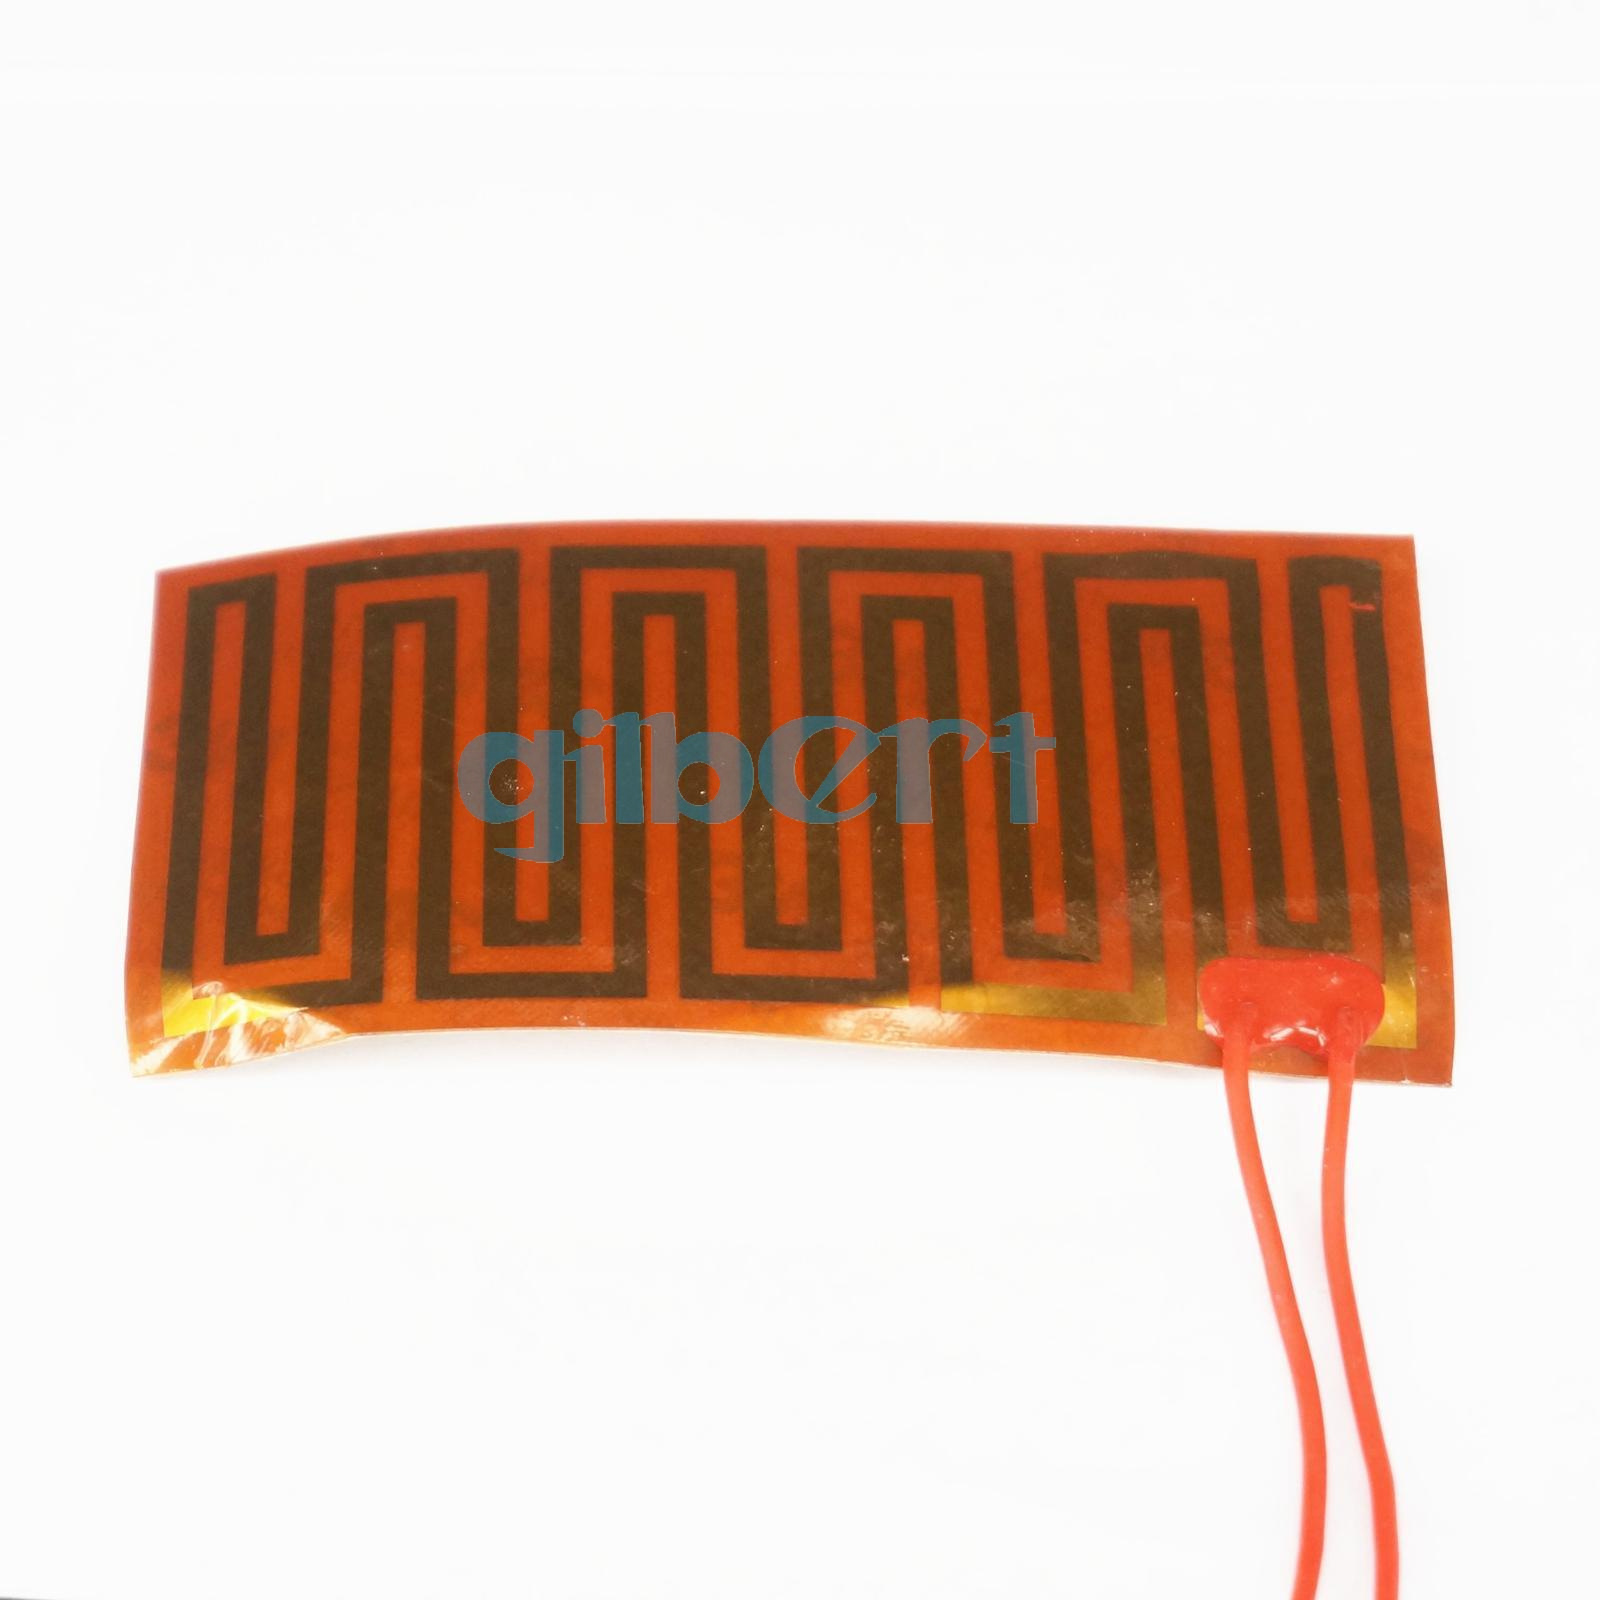 12-24V Sizes Round Eeletric Polyimide Film Heater Heating Element for 3D Printer